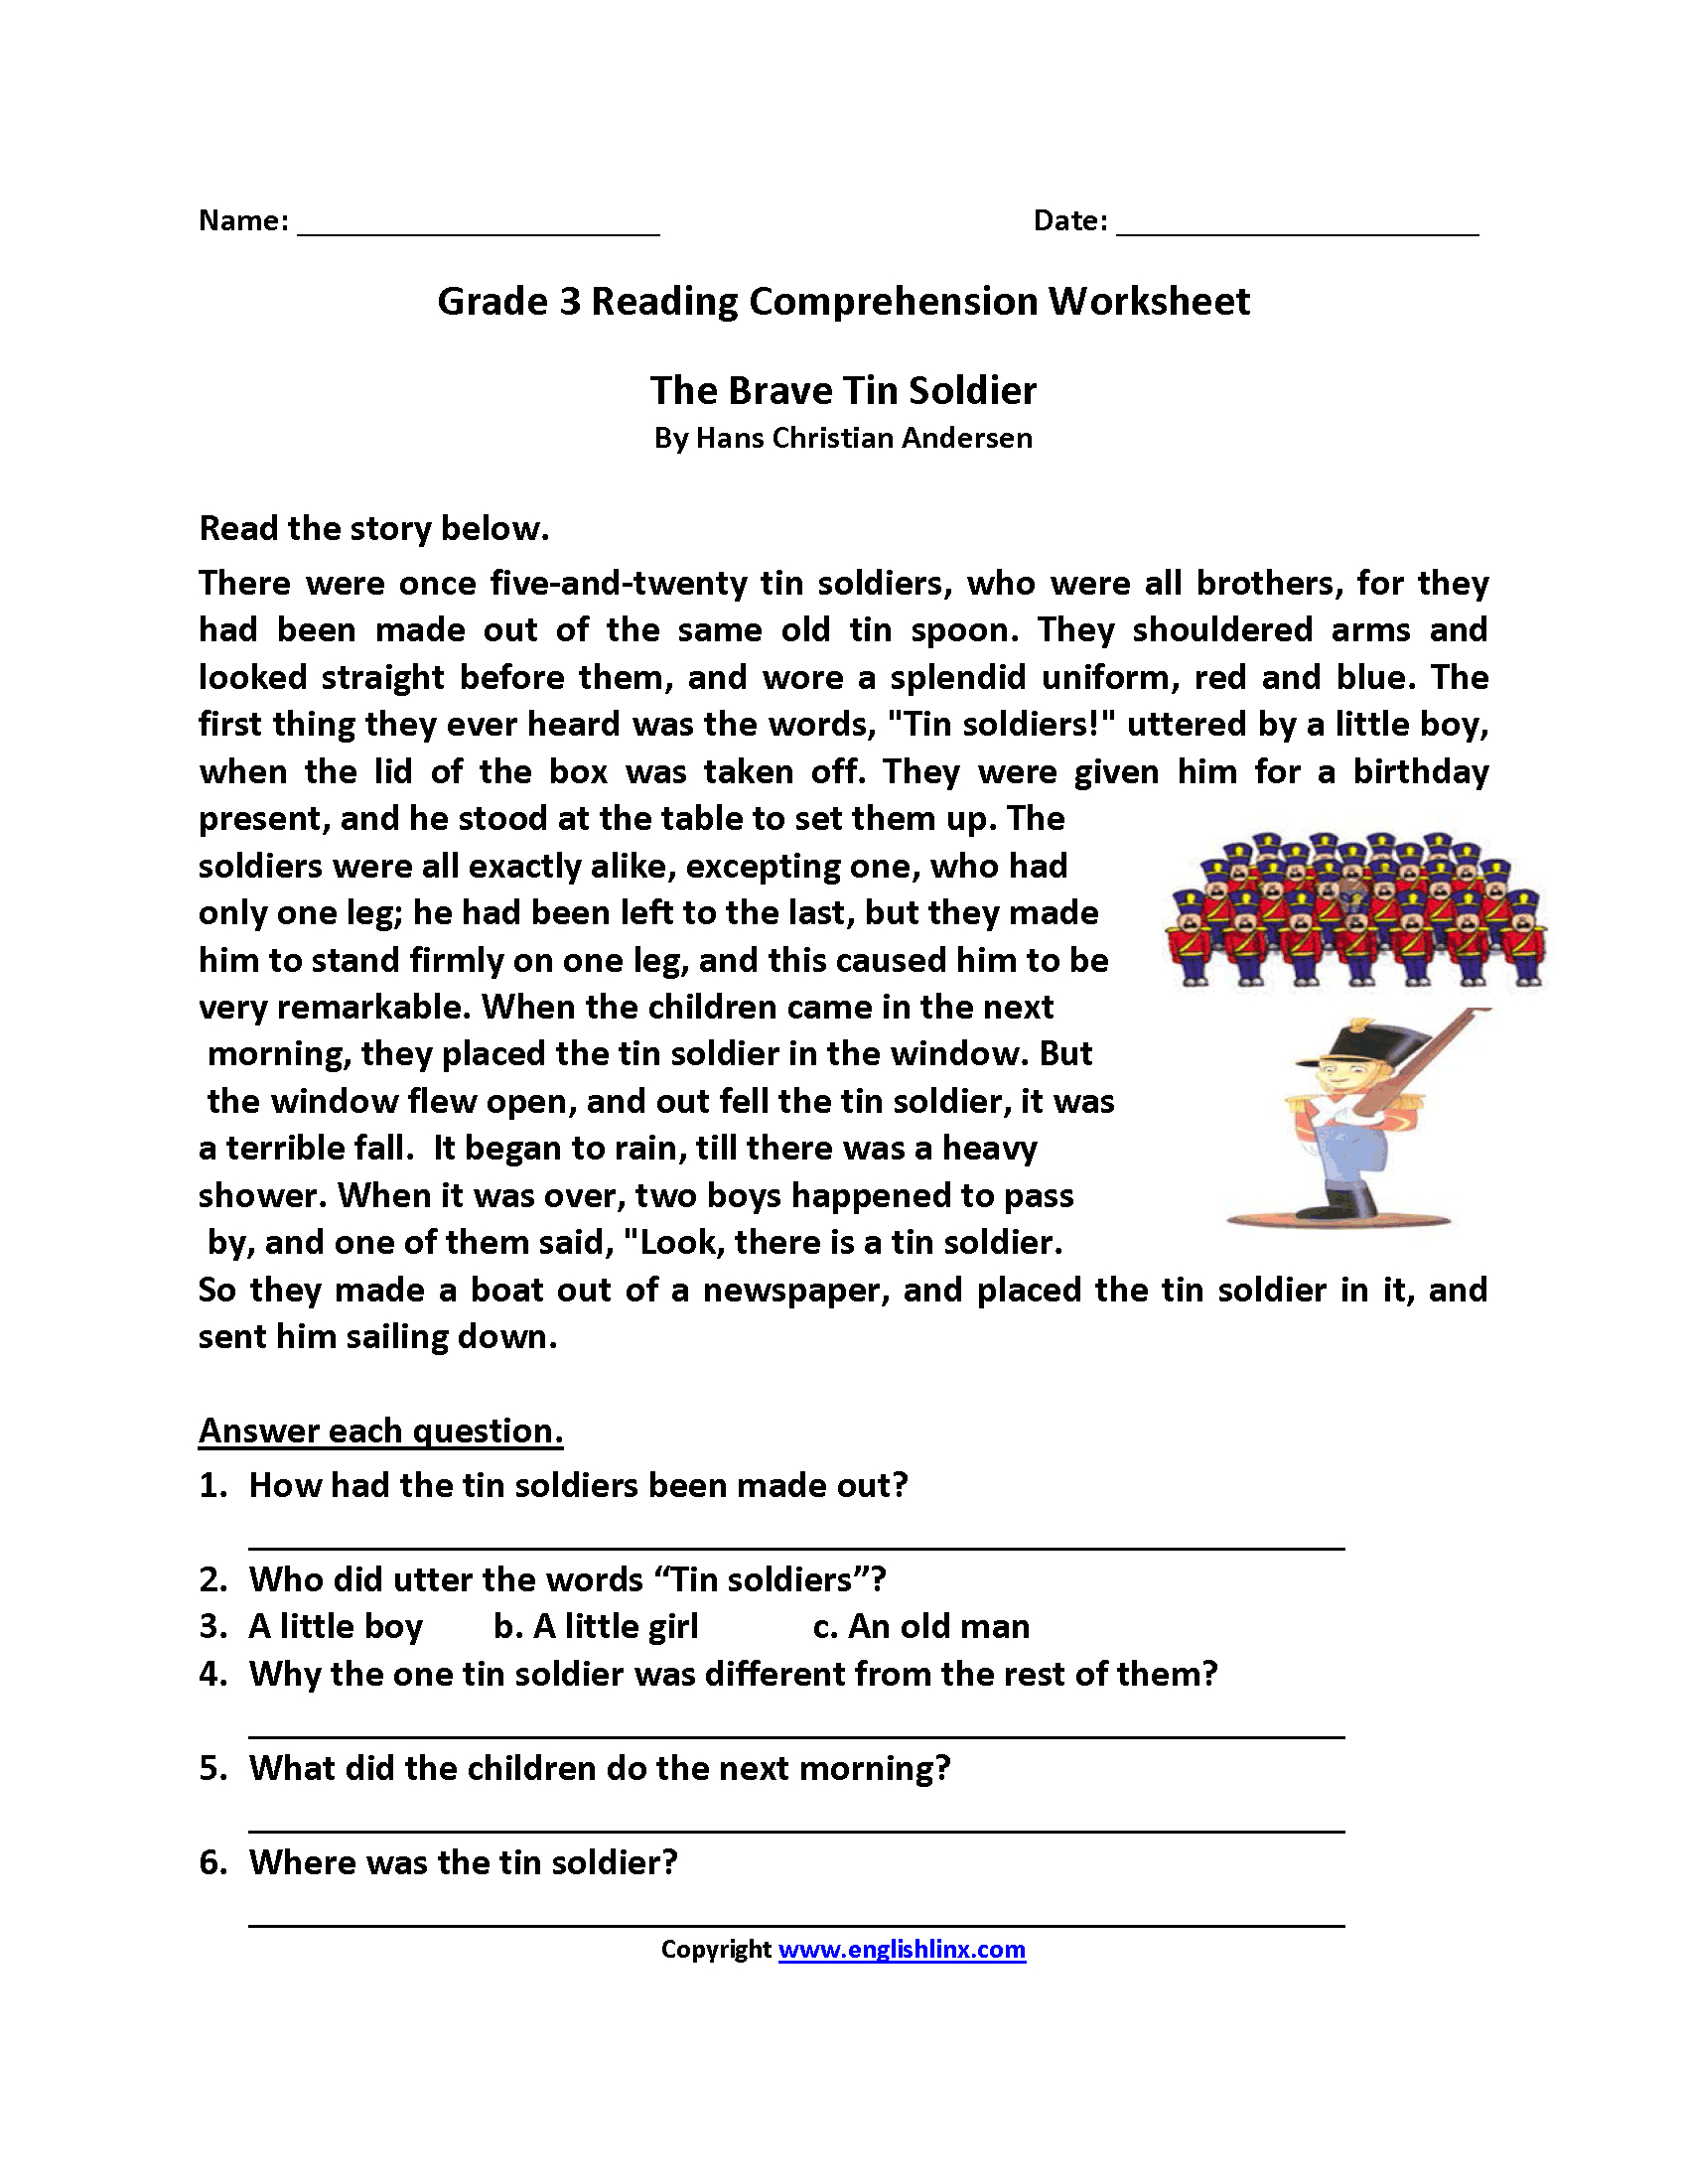 Free Printable Reading Comprehension Worksheets 3Rd Grade For Free | Third Grade Reading Worksheets Free Printable